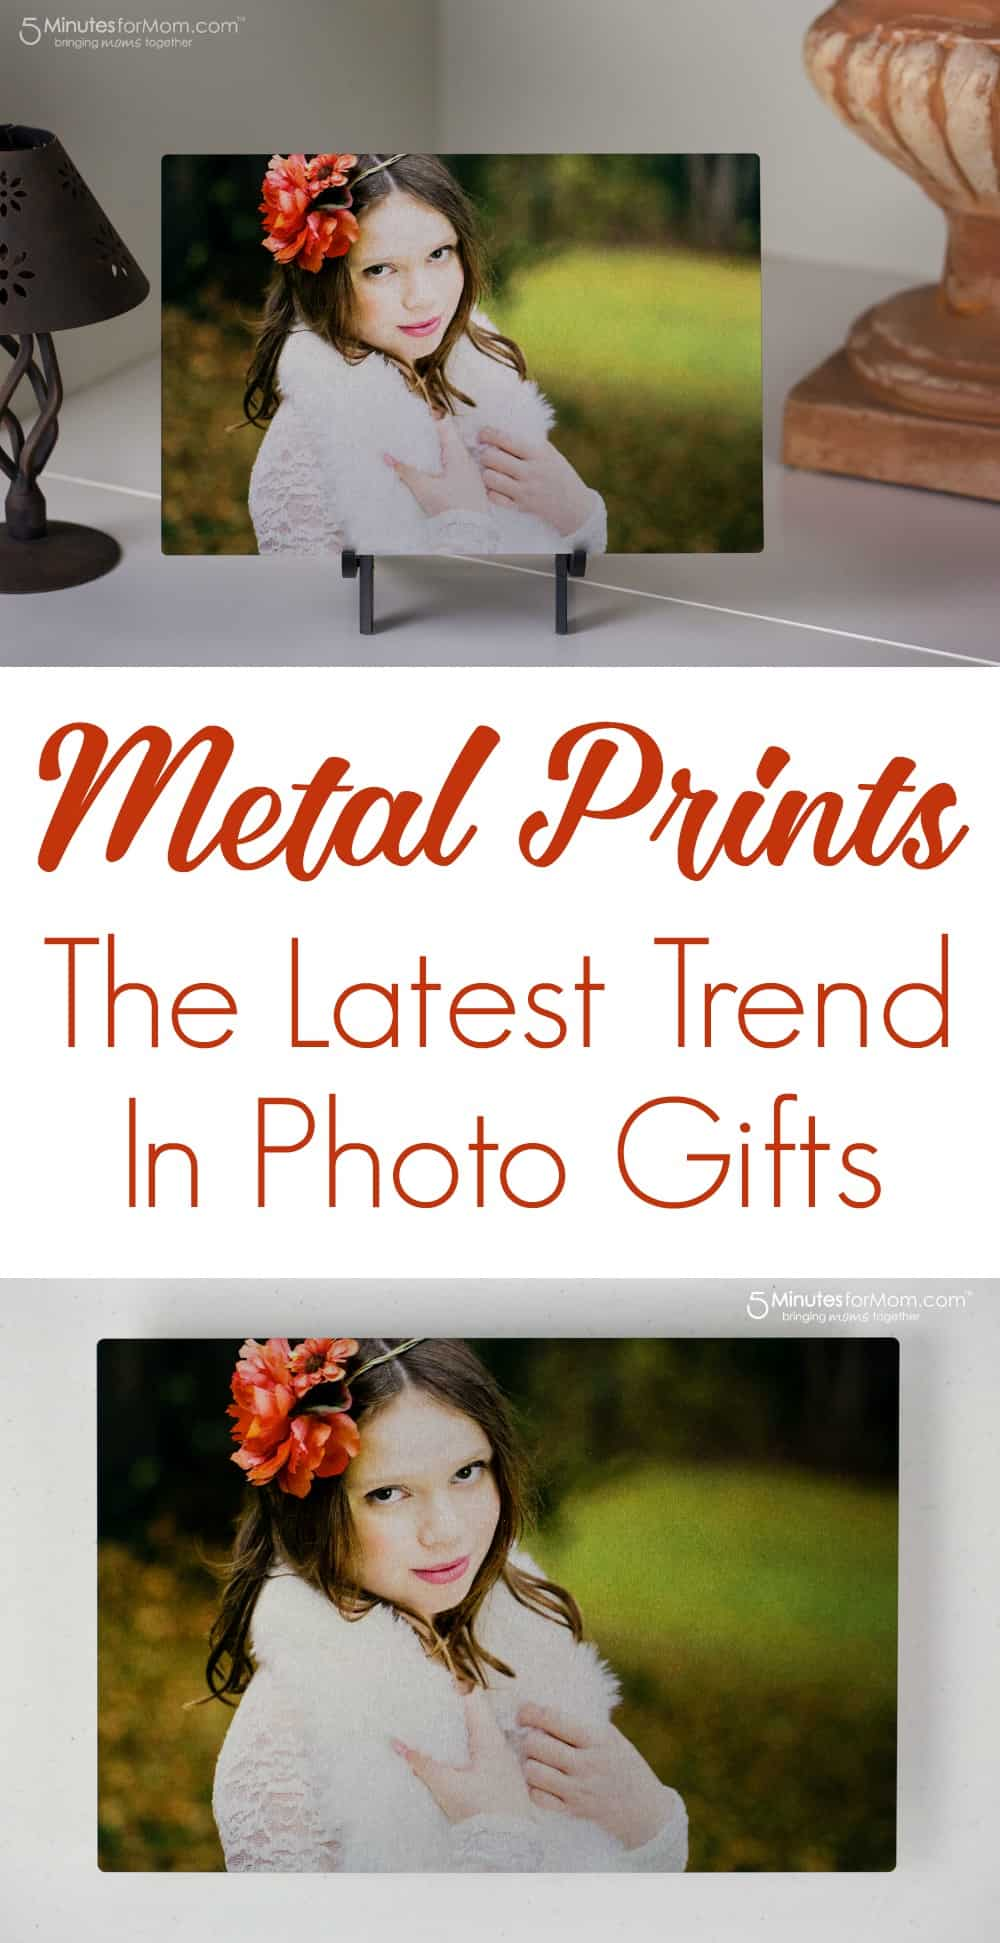 Metal Prints – The Latest Trend In Photo Gifts